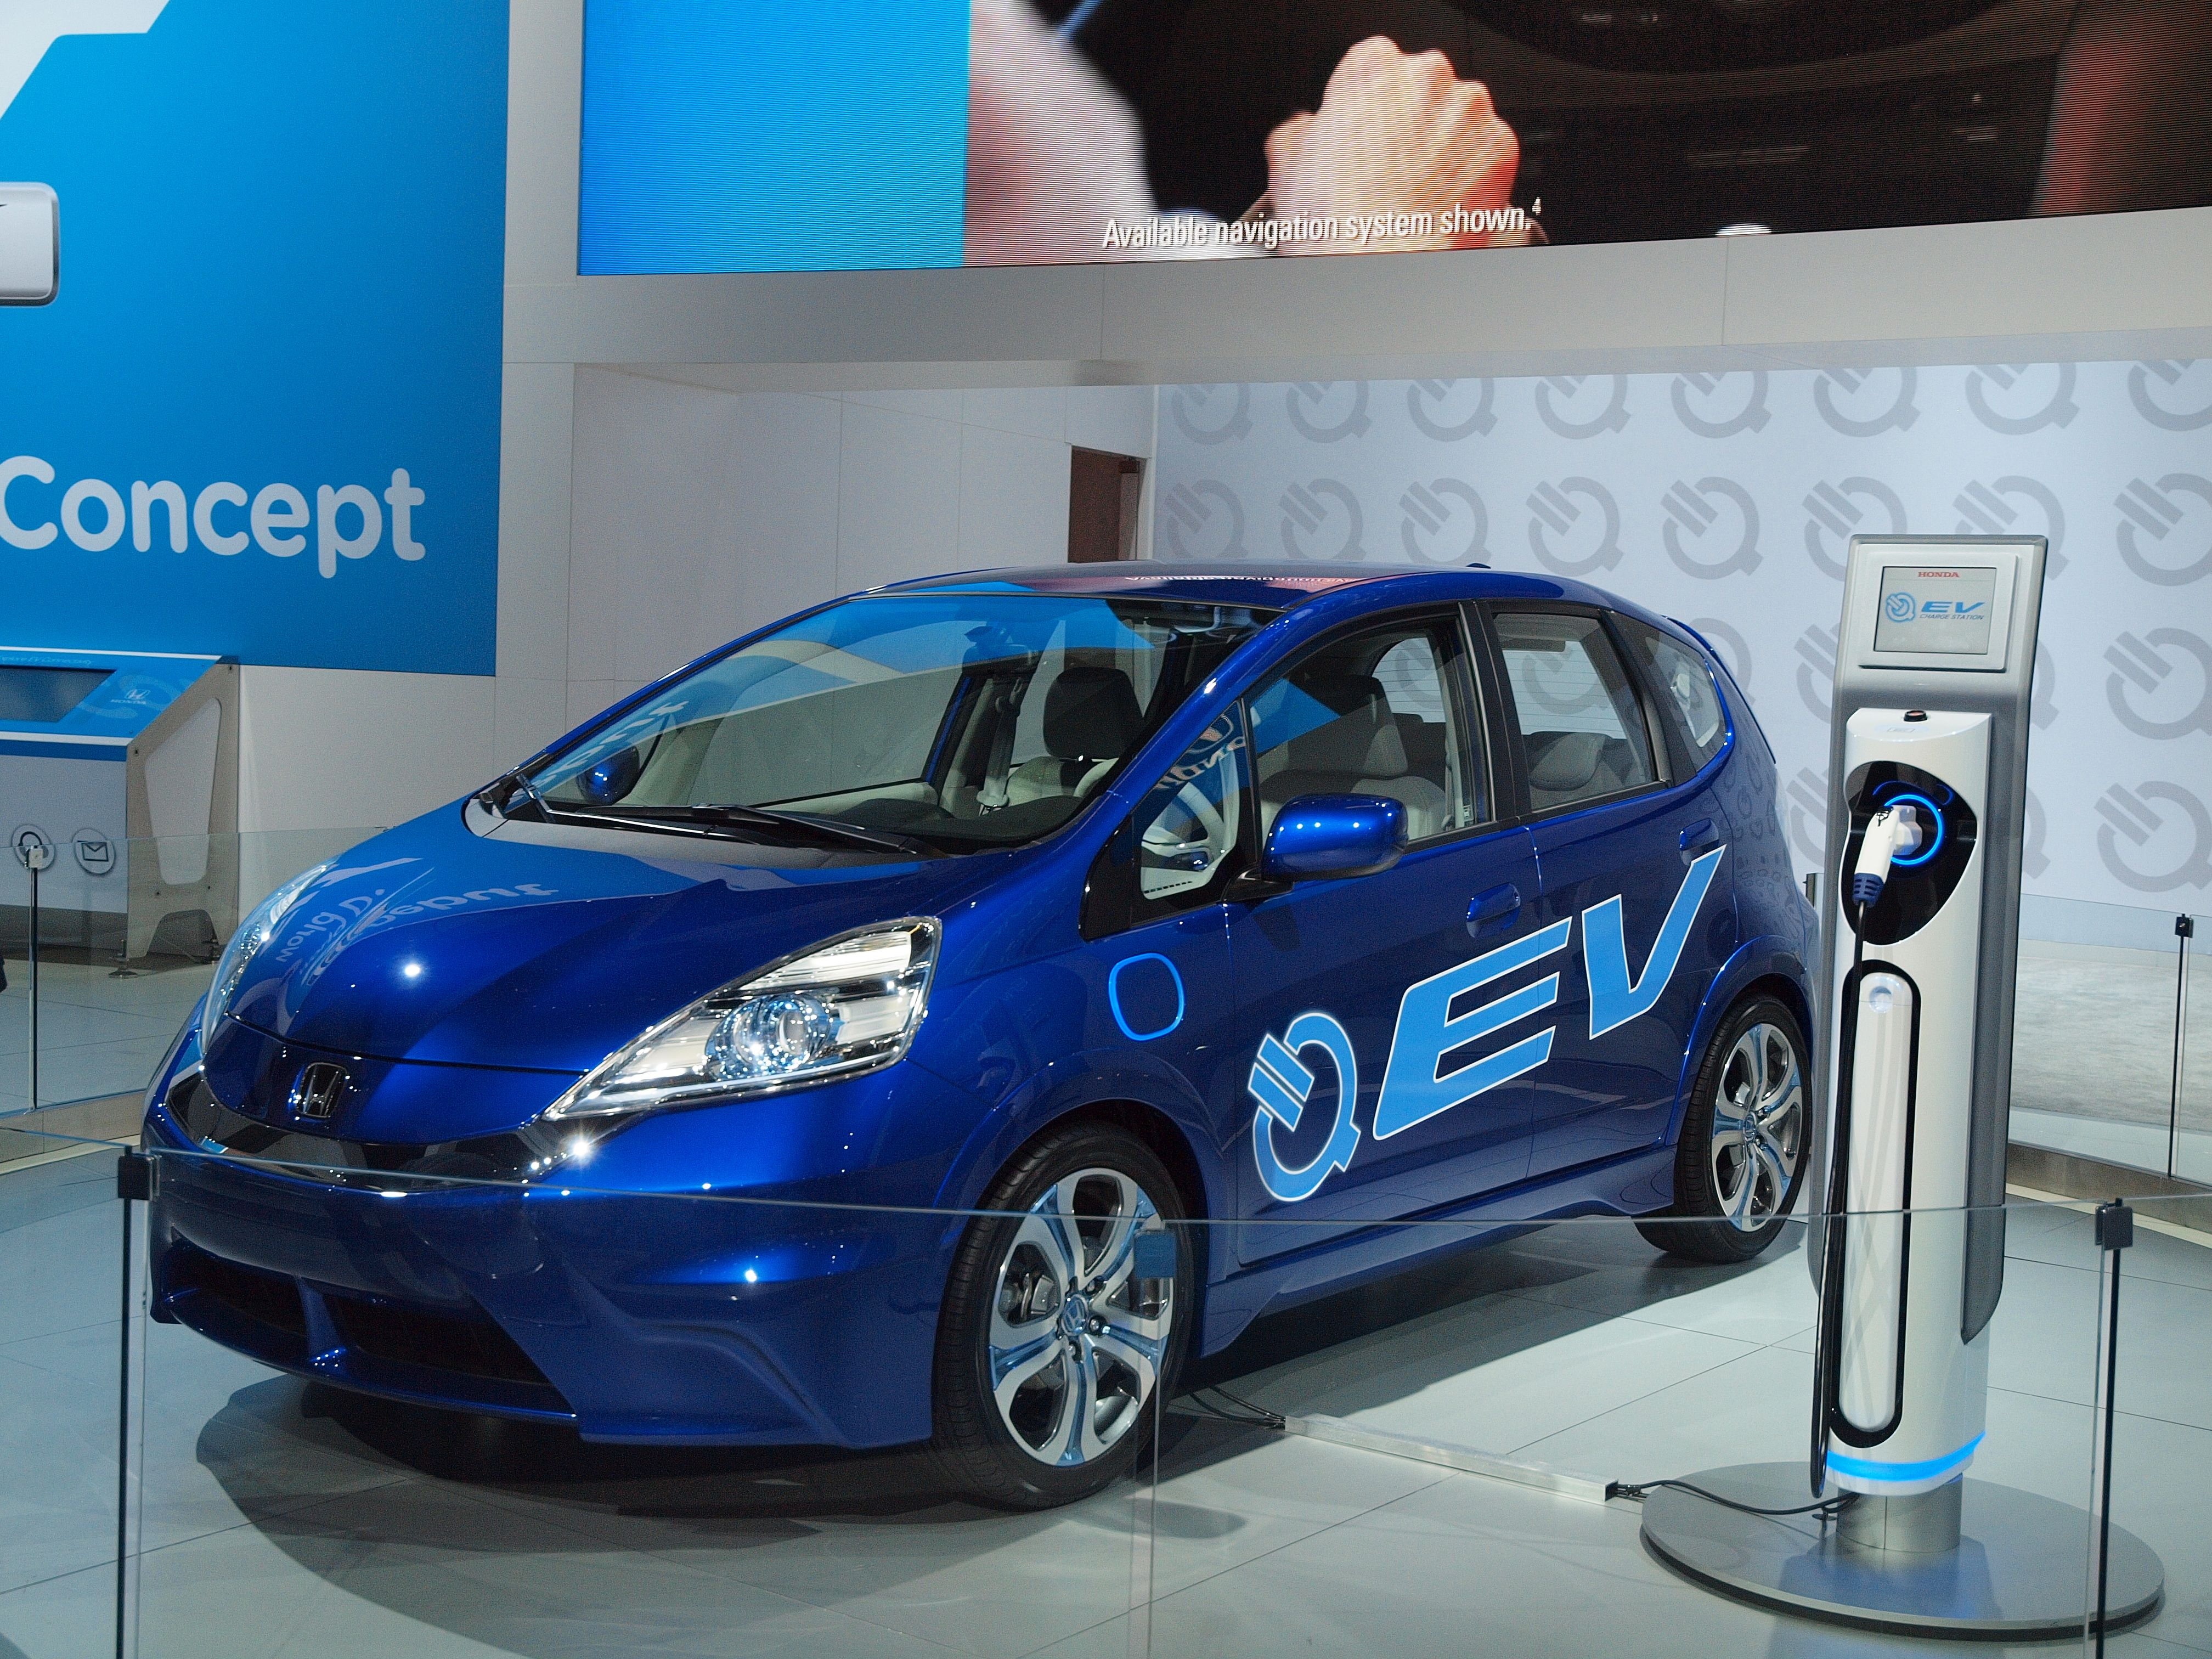 That's Really An Electric Car To learn more about our